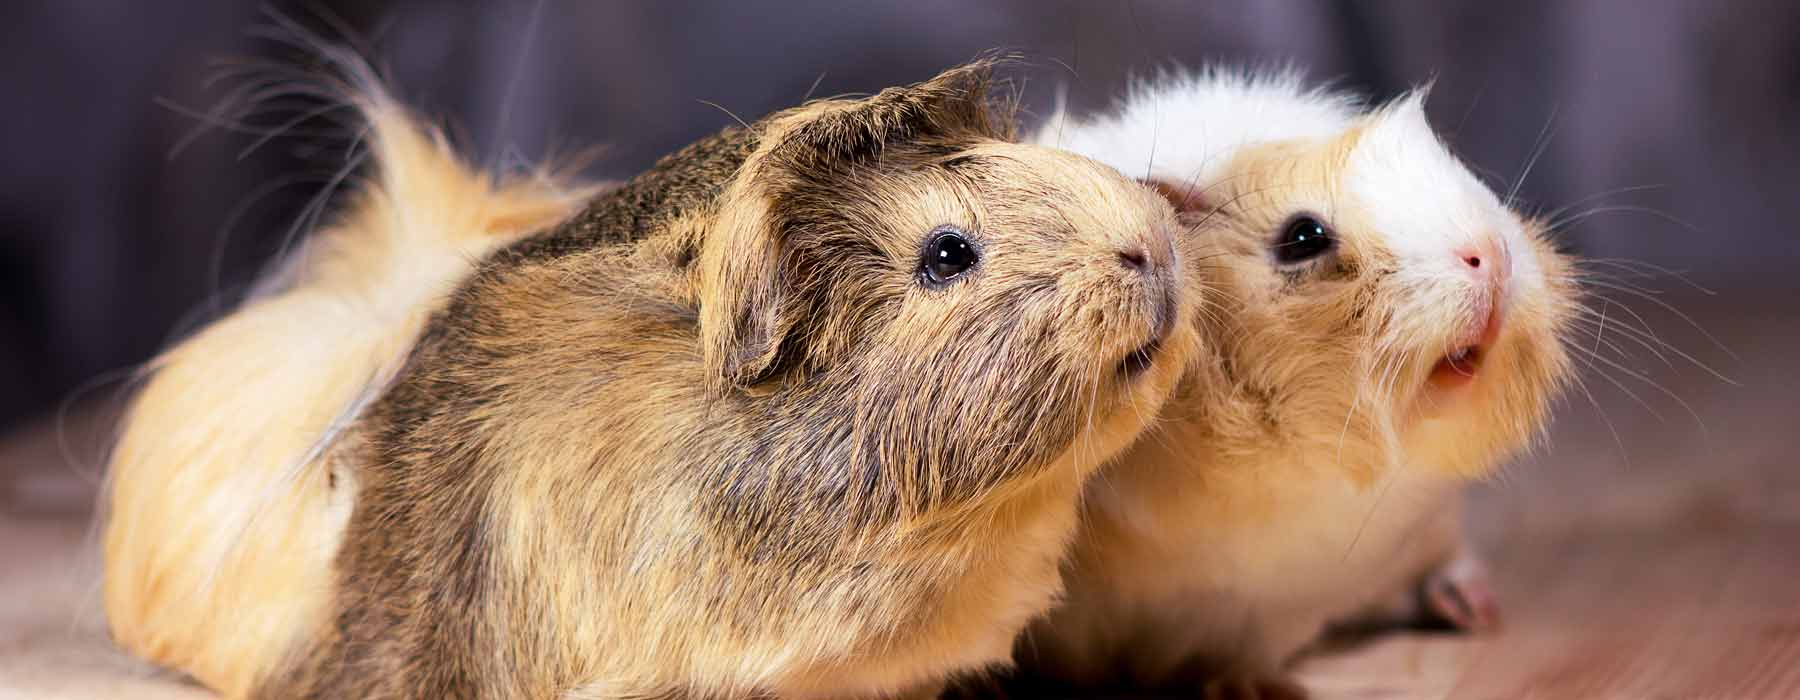 two guinea pigs side by side